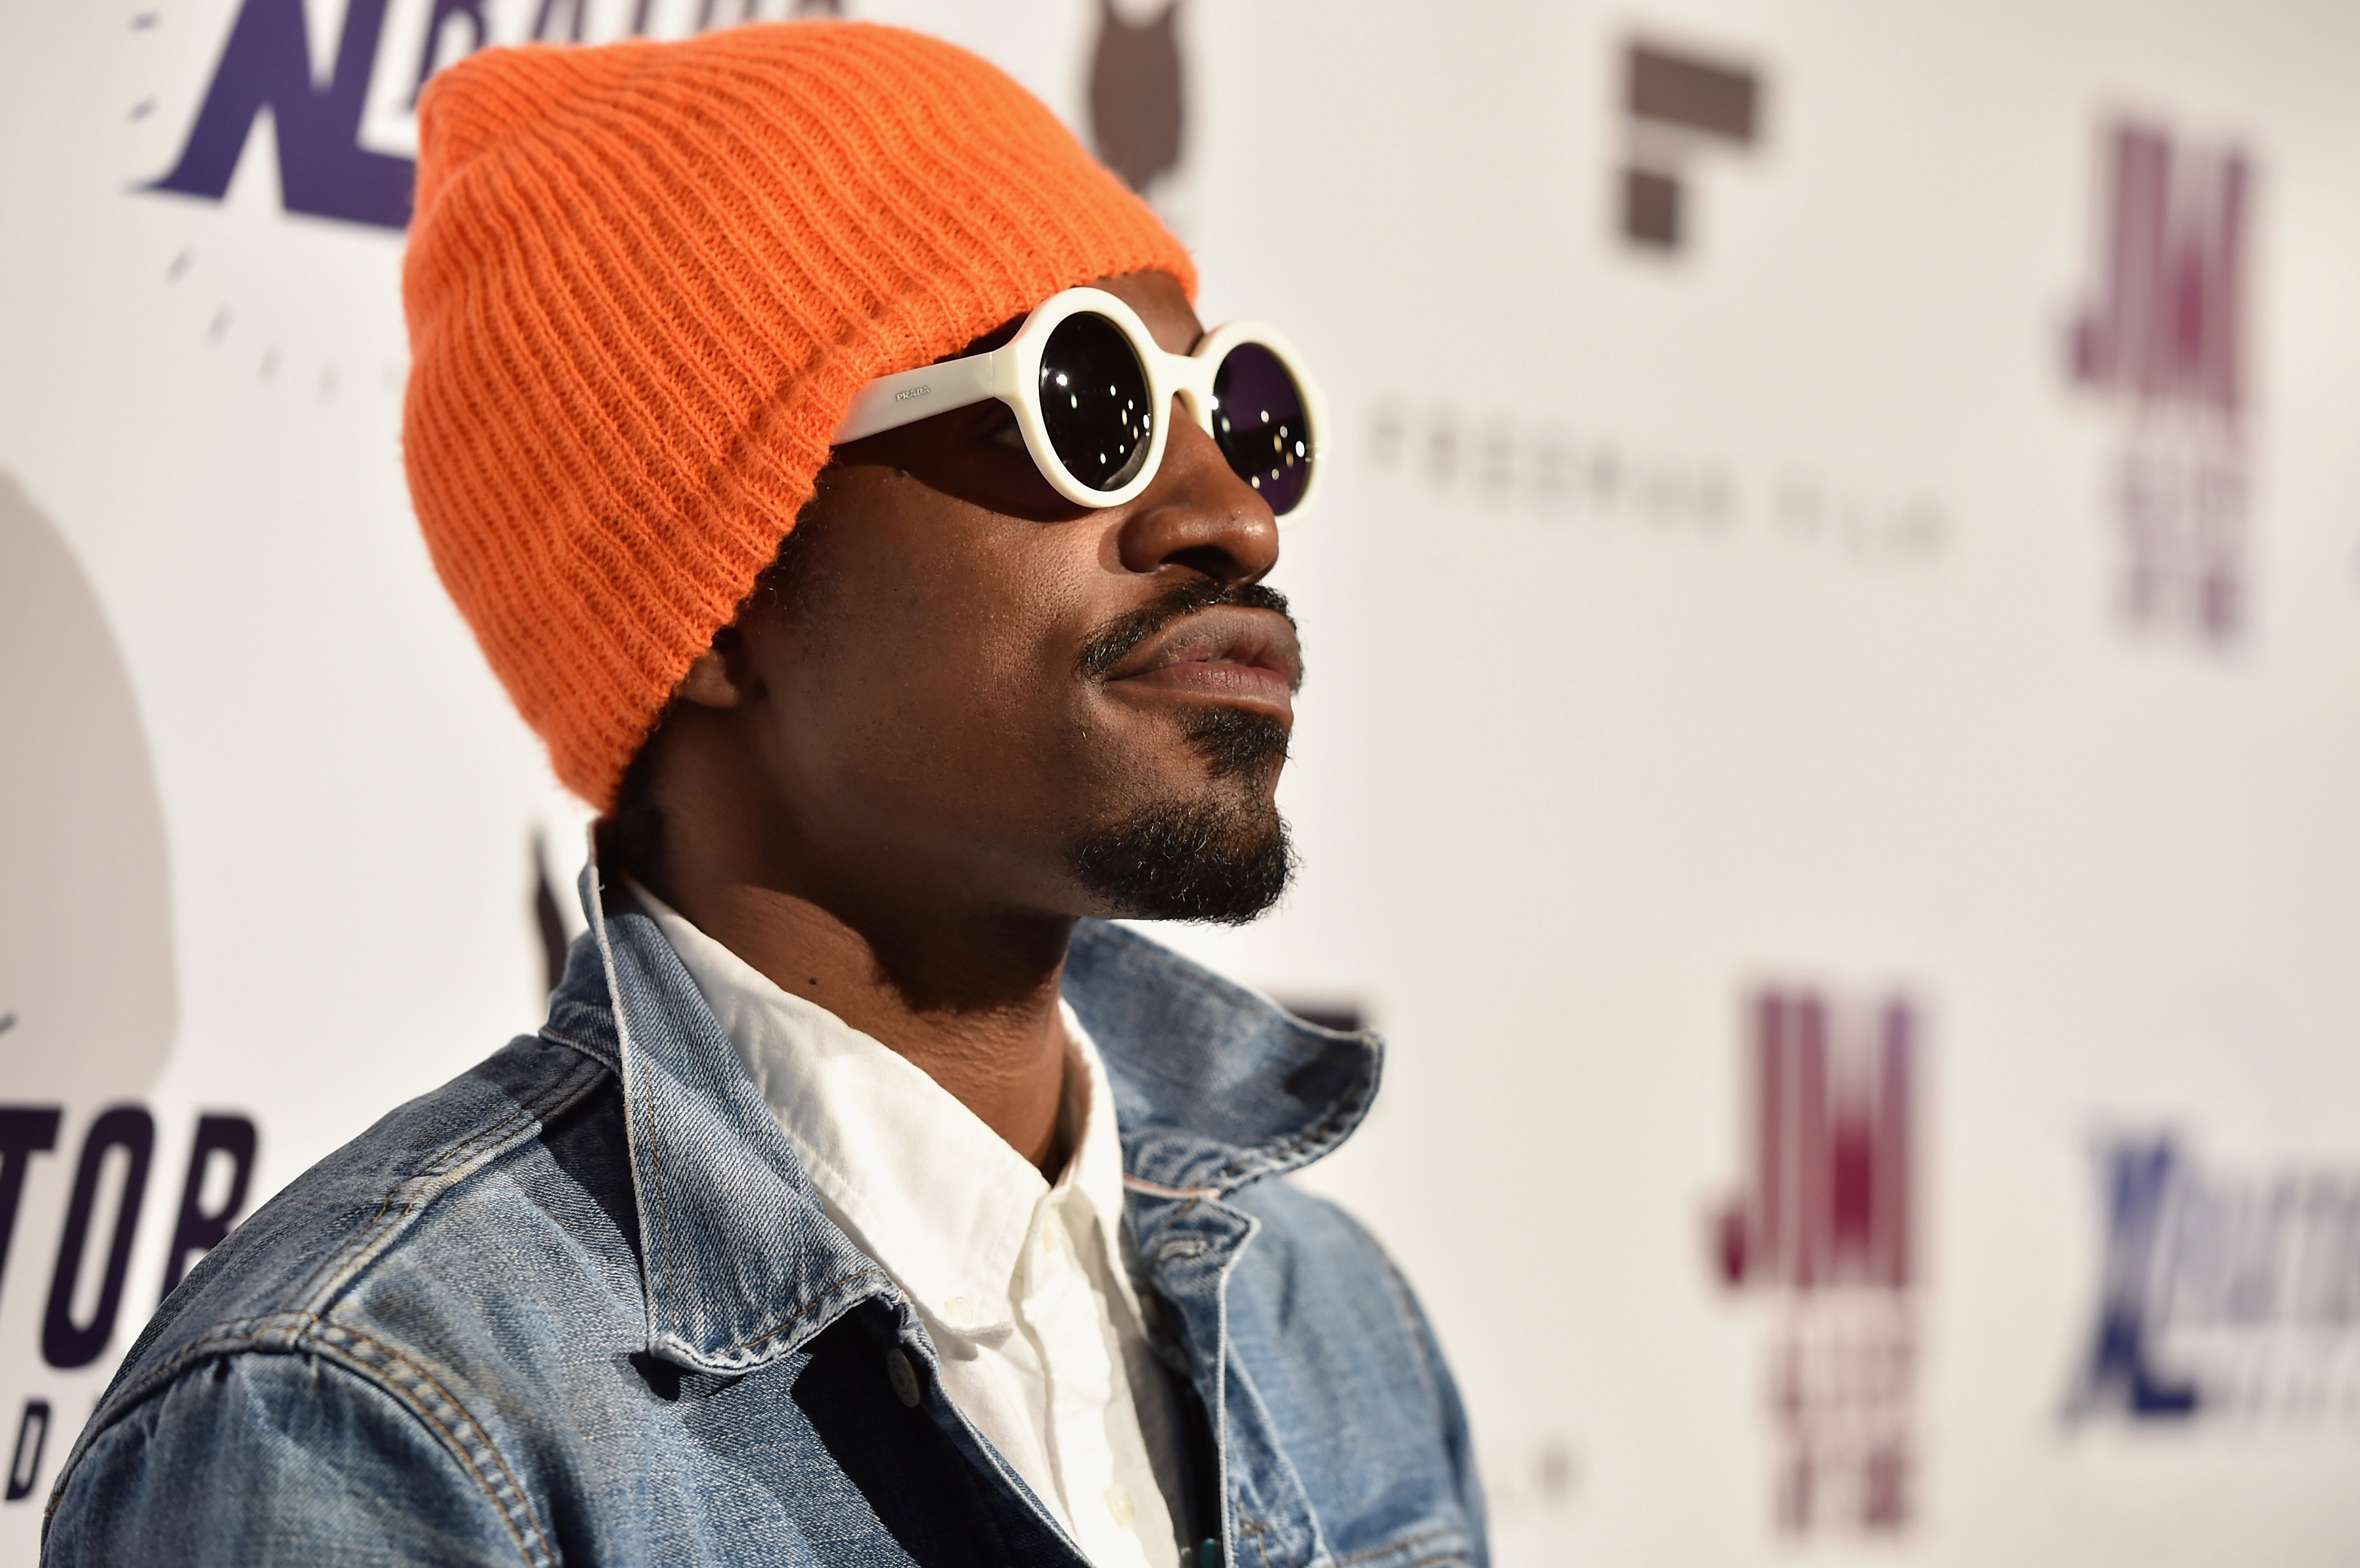 André 3000 Was Spotted Casually Playing a Mayan Double Flute in LAX Terminal